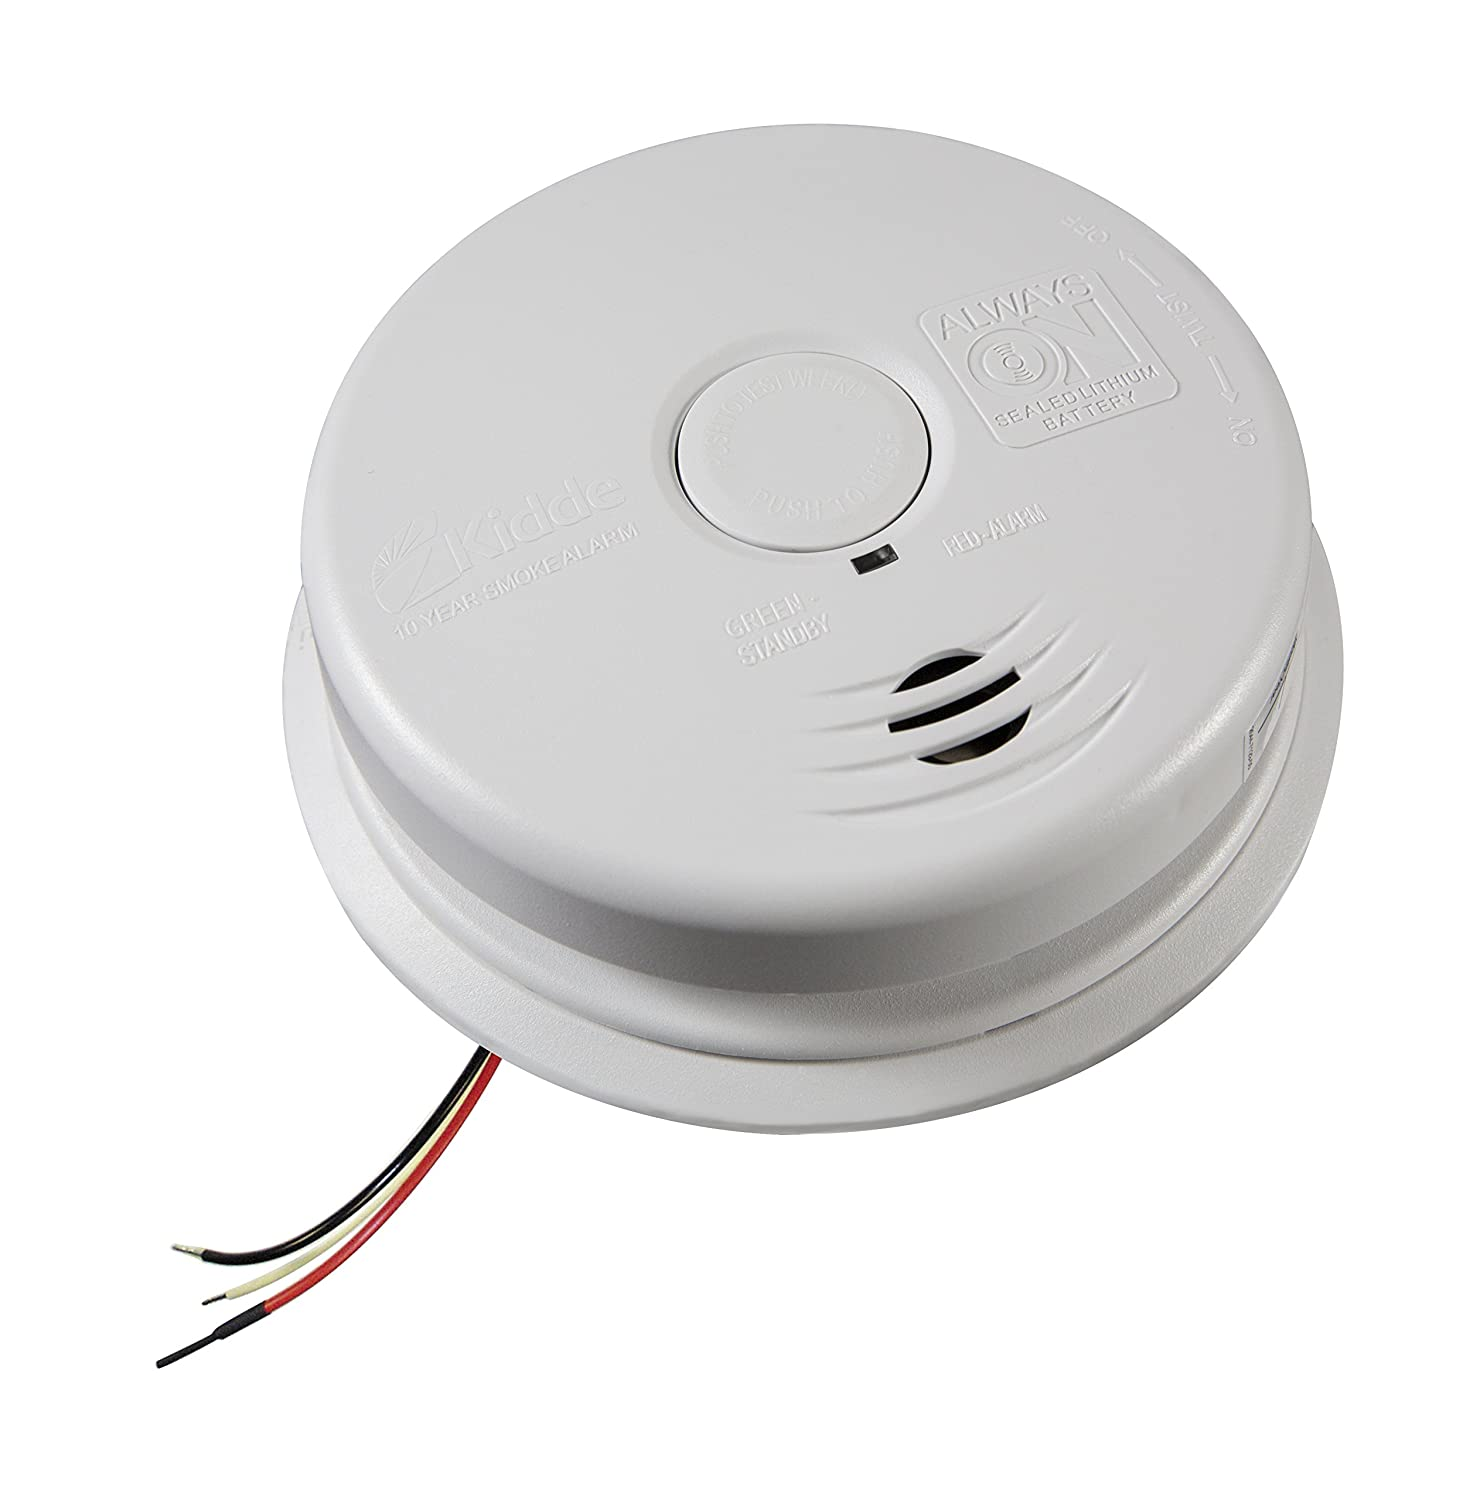 8159mAUhGkL._SL1500_ kidde i12010s hardwired smoke alarm amazon com  at reclaimingppi.co